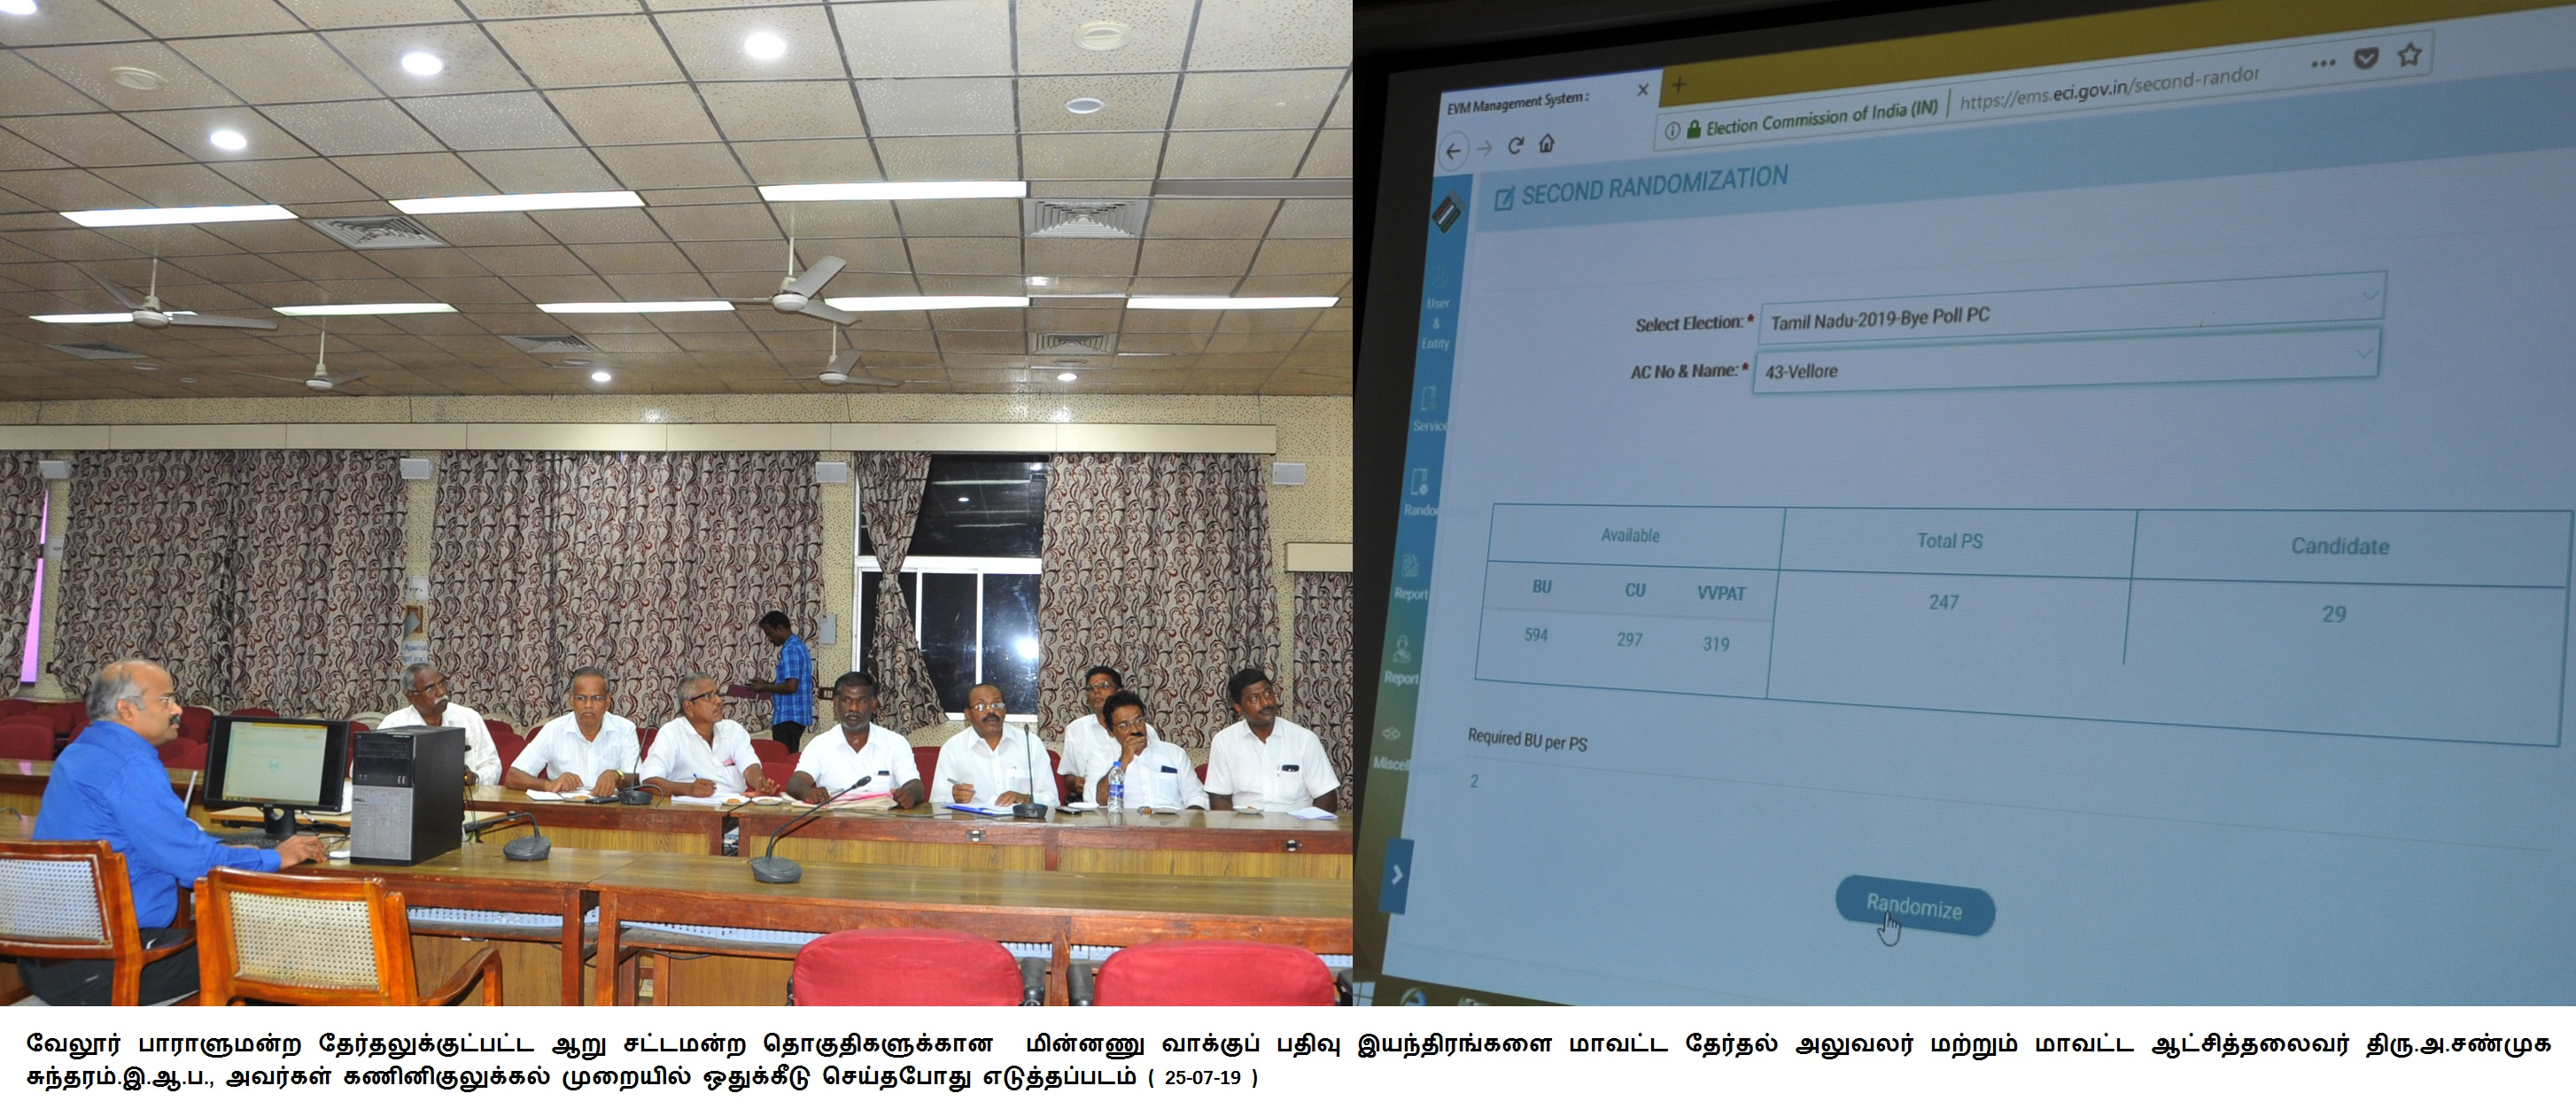 Vellore Parliamentary EVM - Electronic Voting Machine randomization 25/07/2019